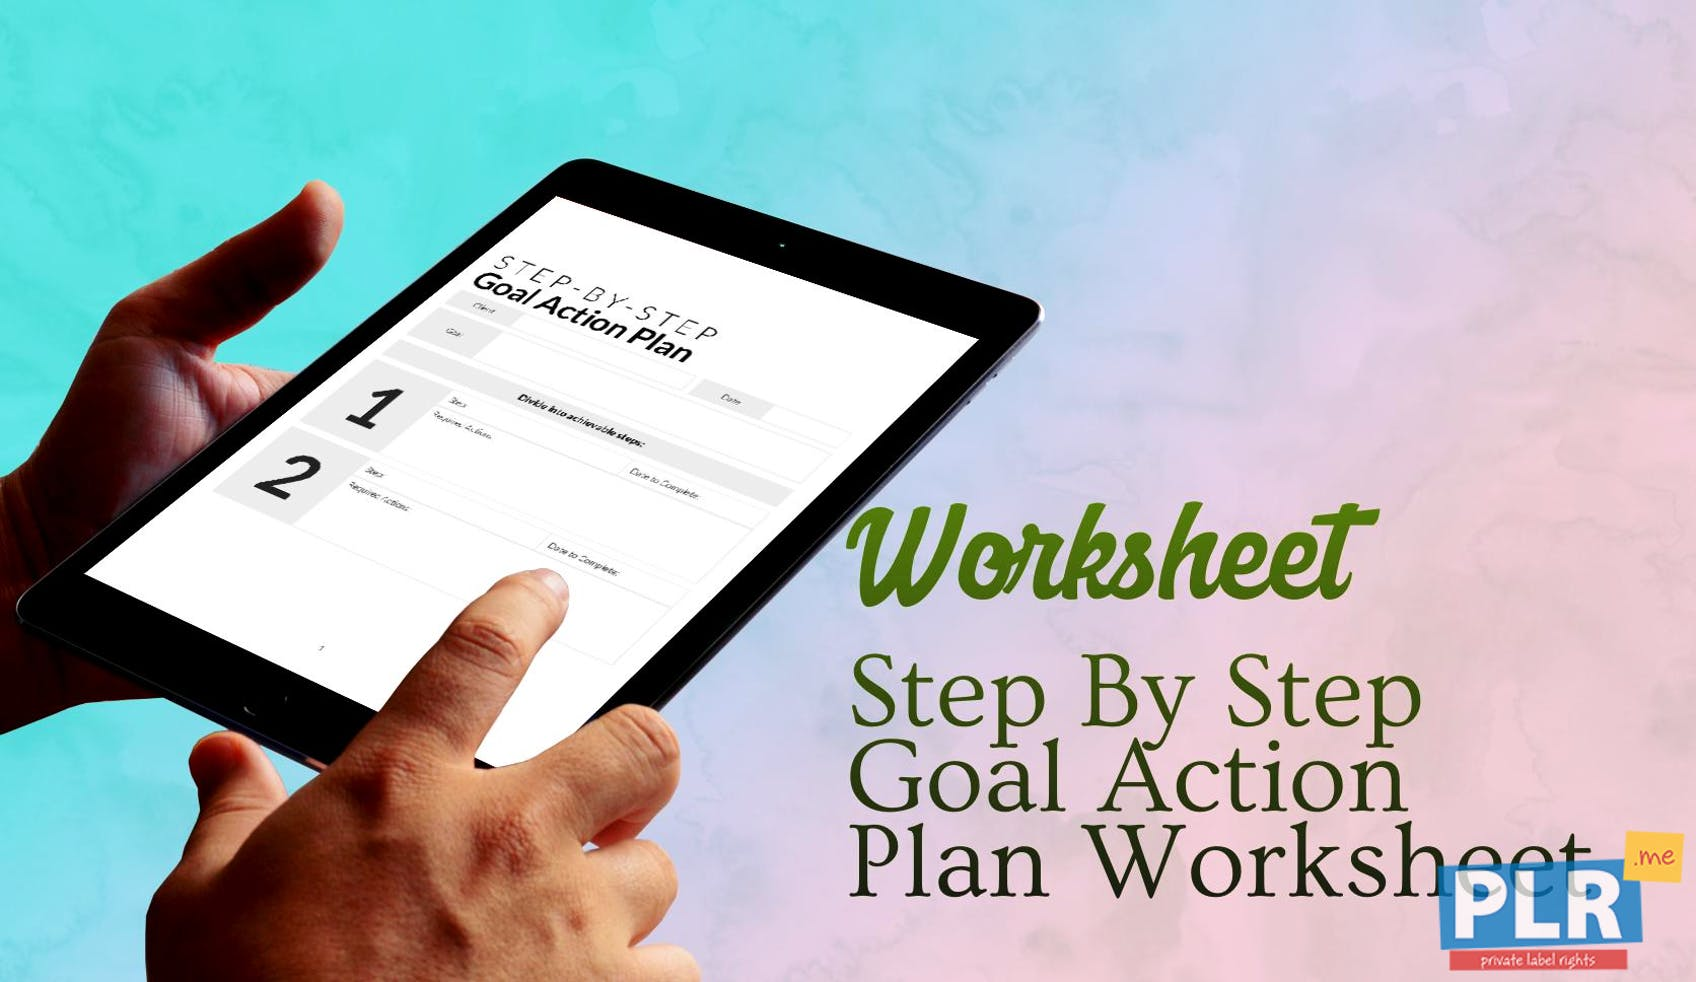 Step By Step Goal Action Plan Worksheet